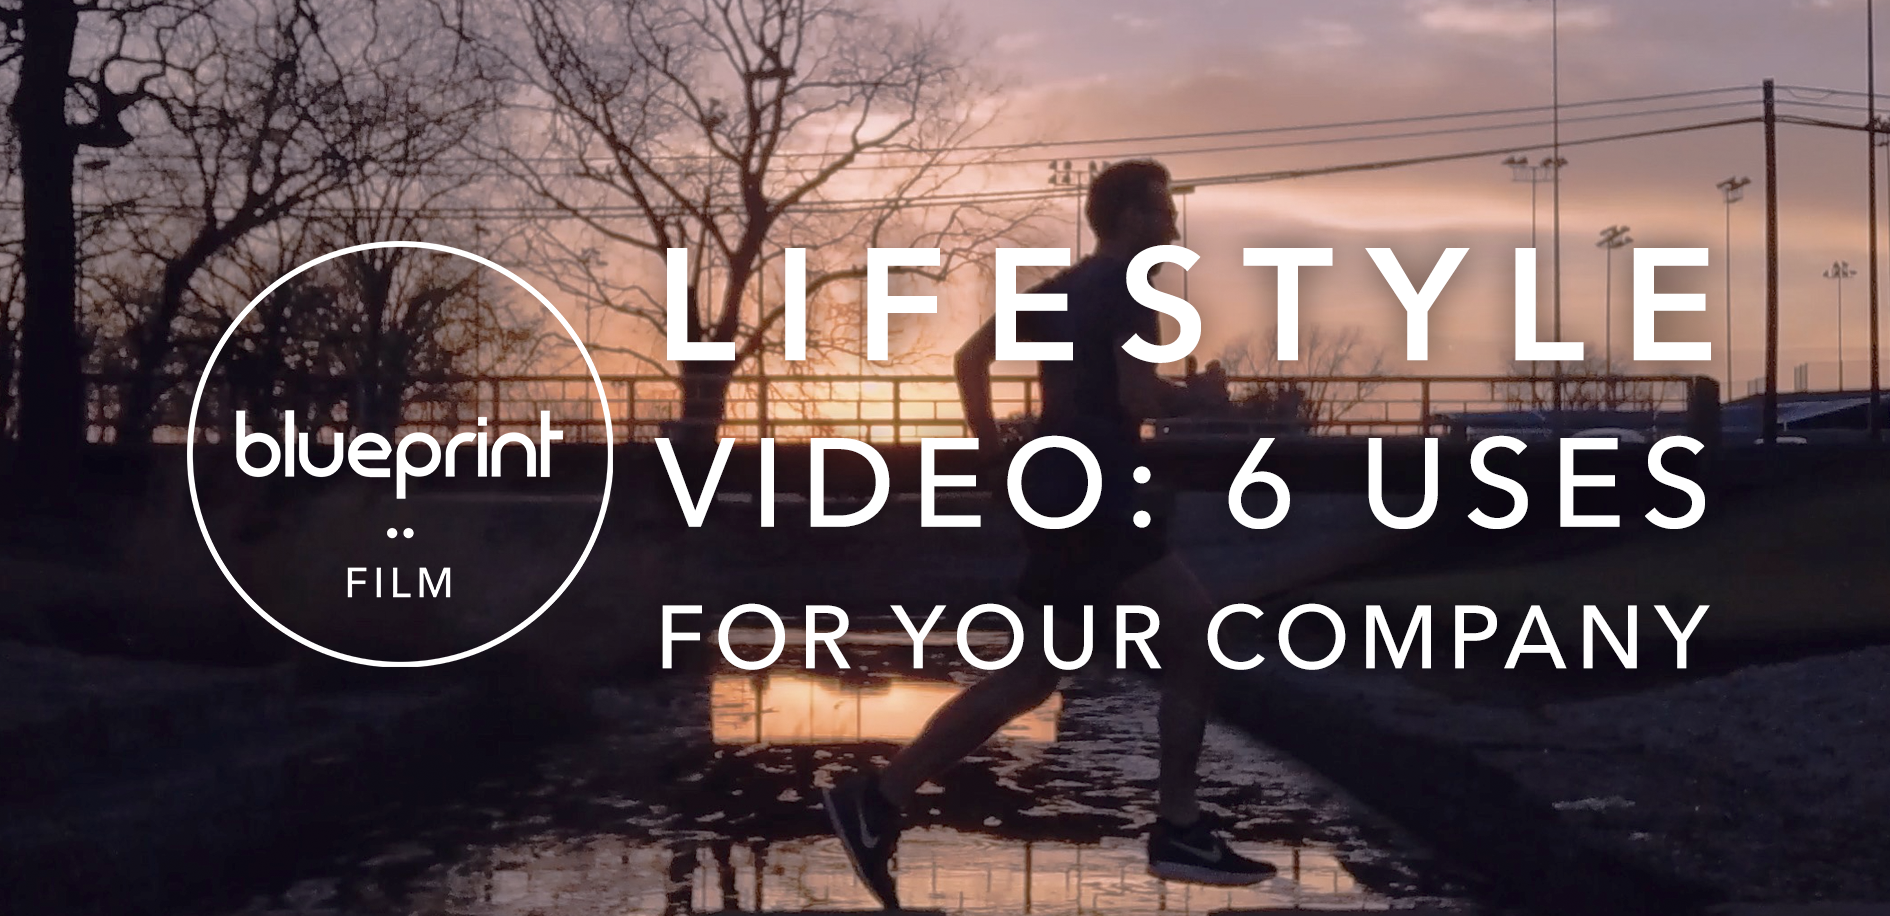 lifestyle video 6 uses for your company